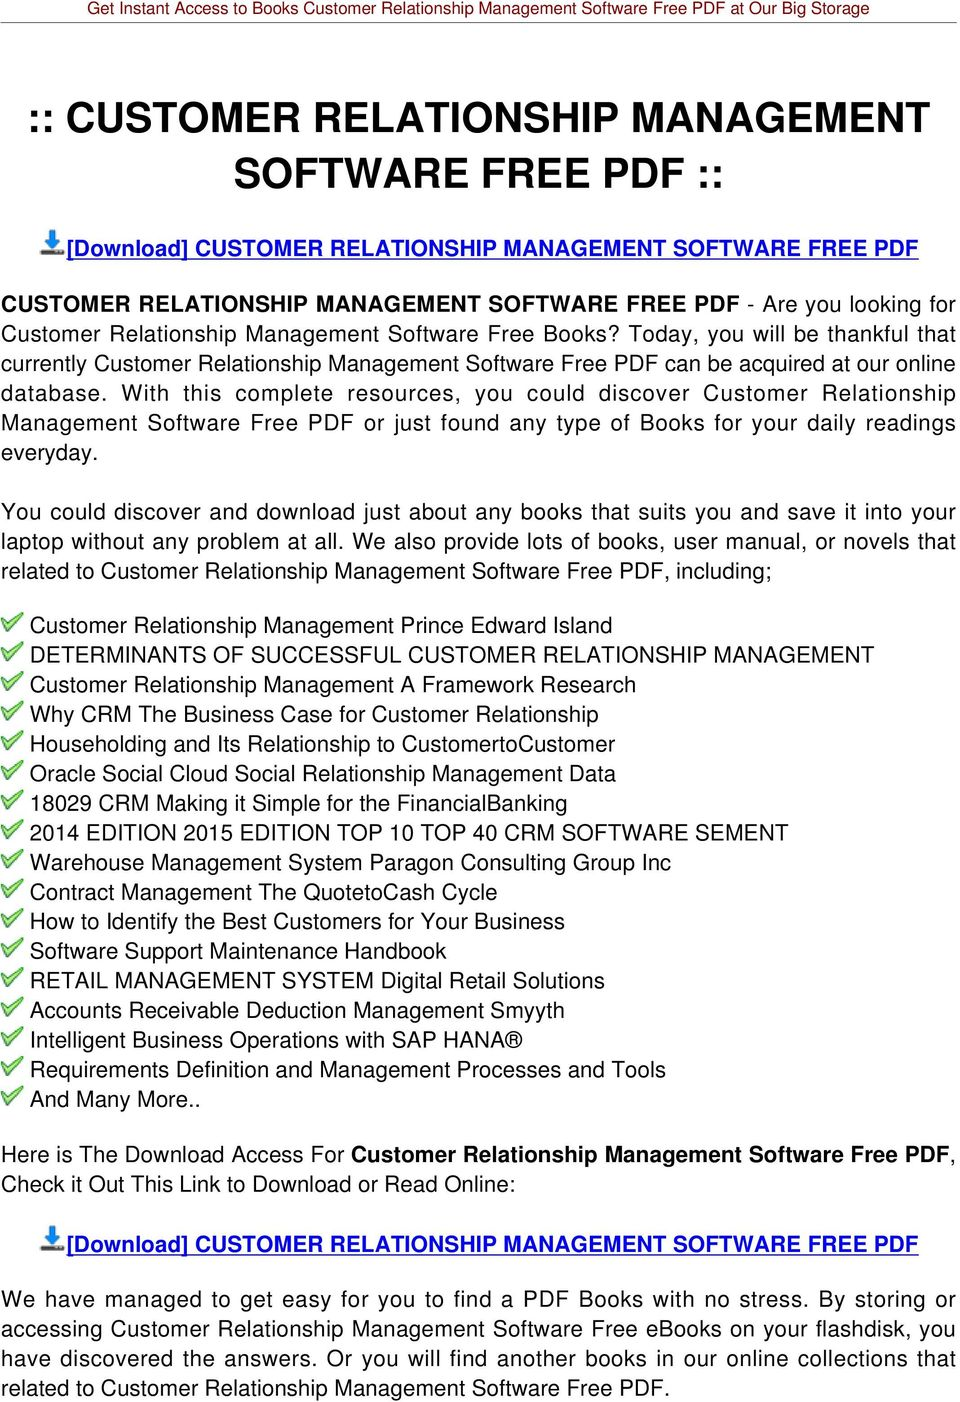 With this complete resources, you could discover Customer Relationship Management Software Free PDF or just found any type of Books for your daily readings everyday.